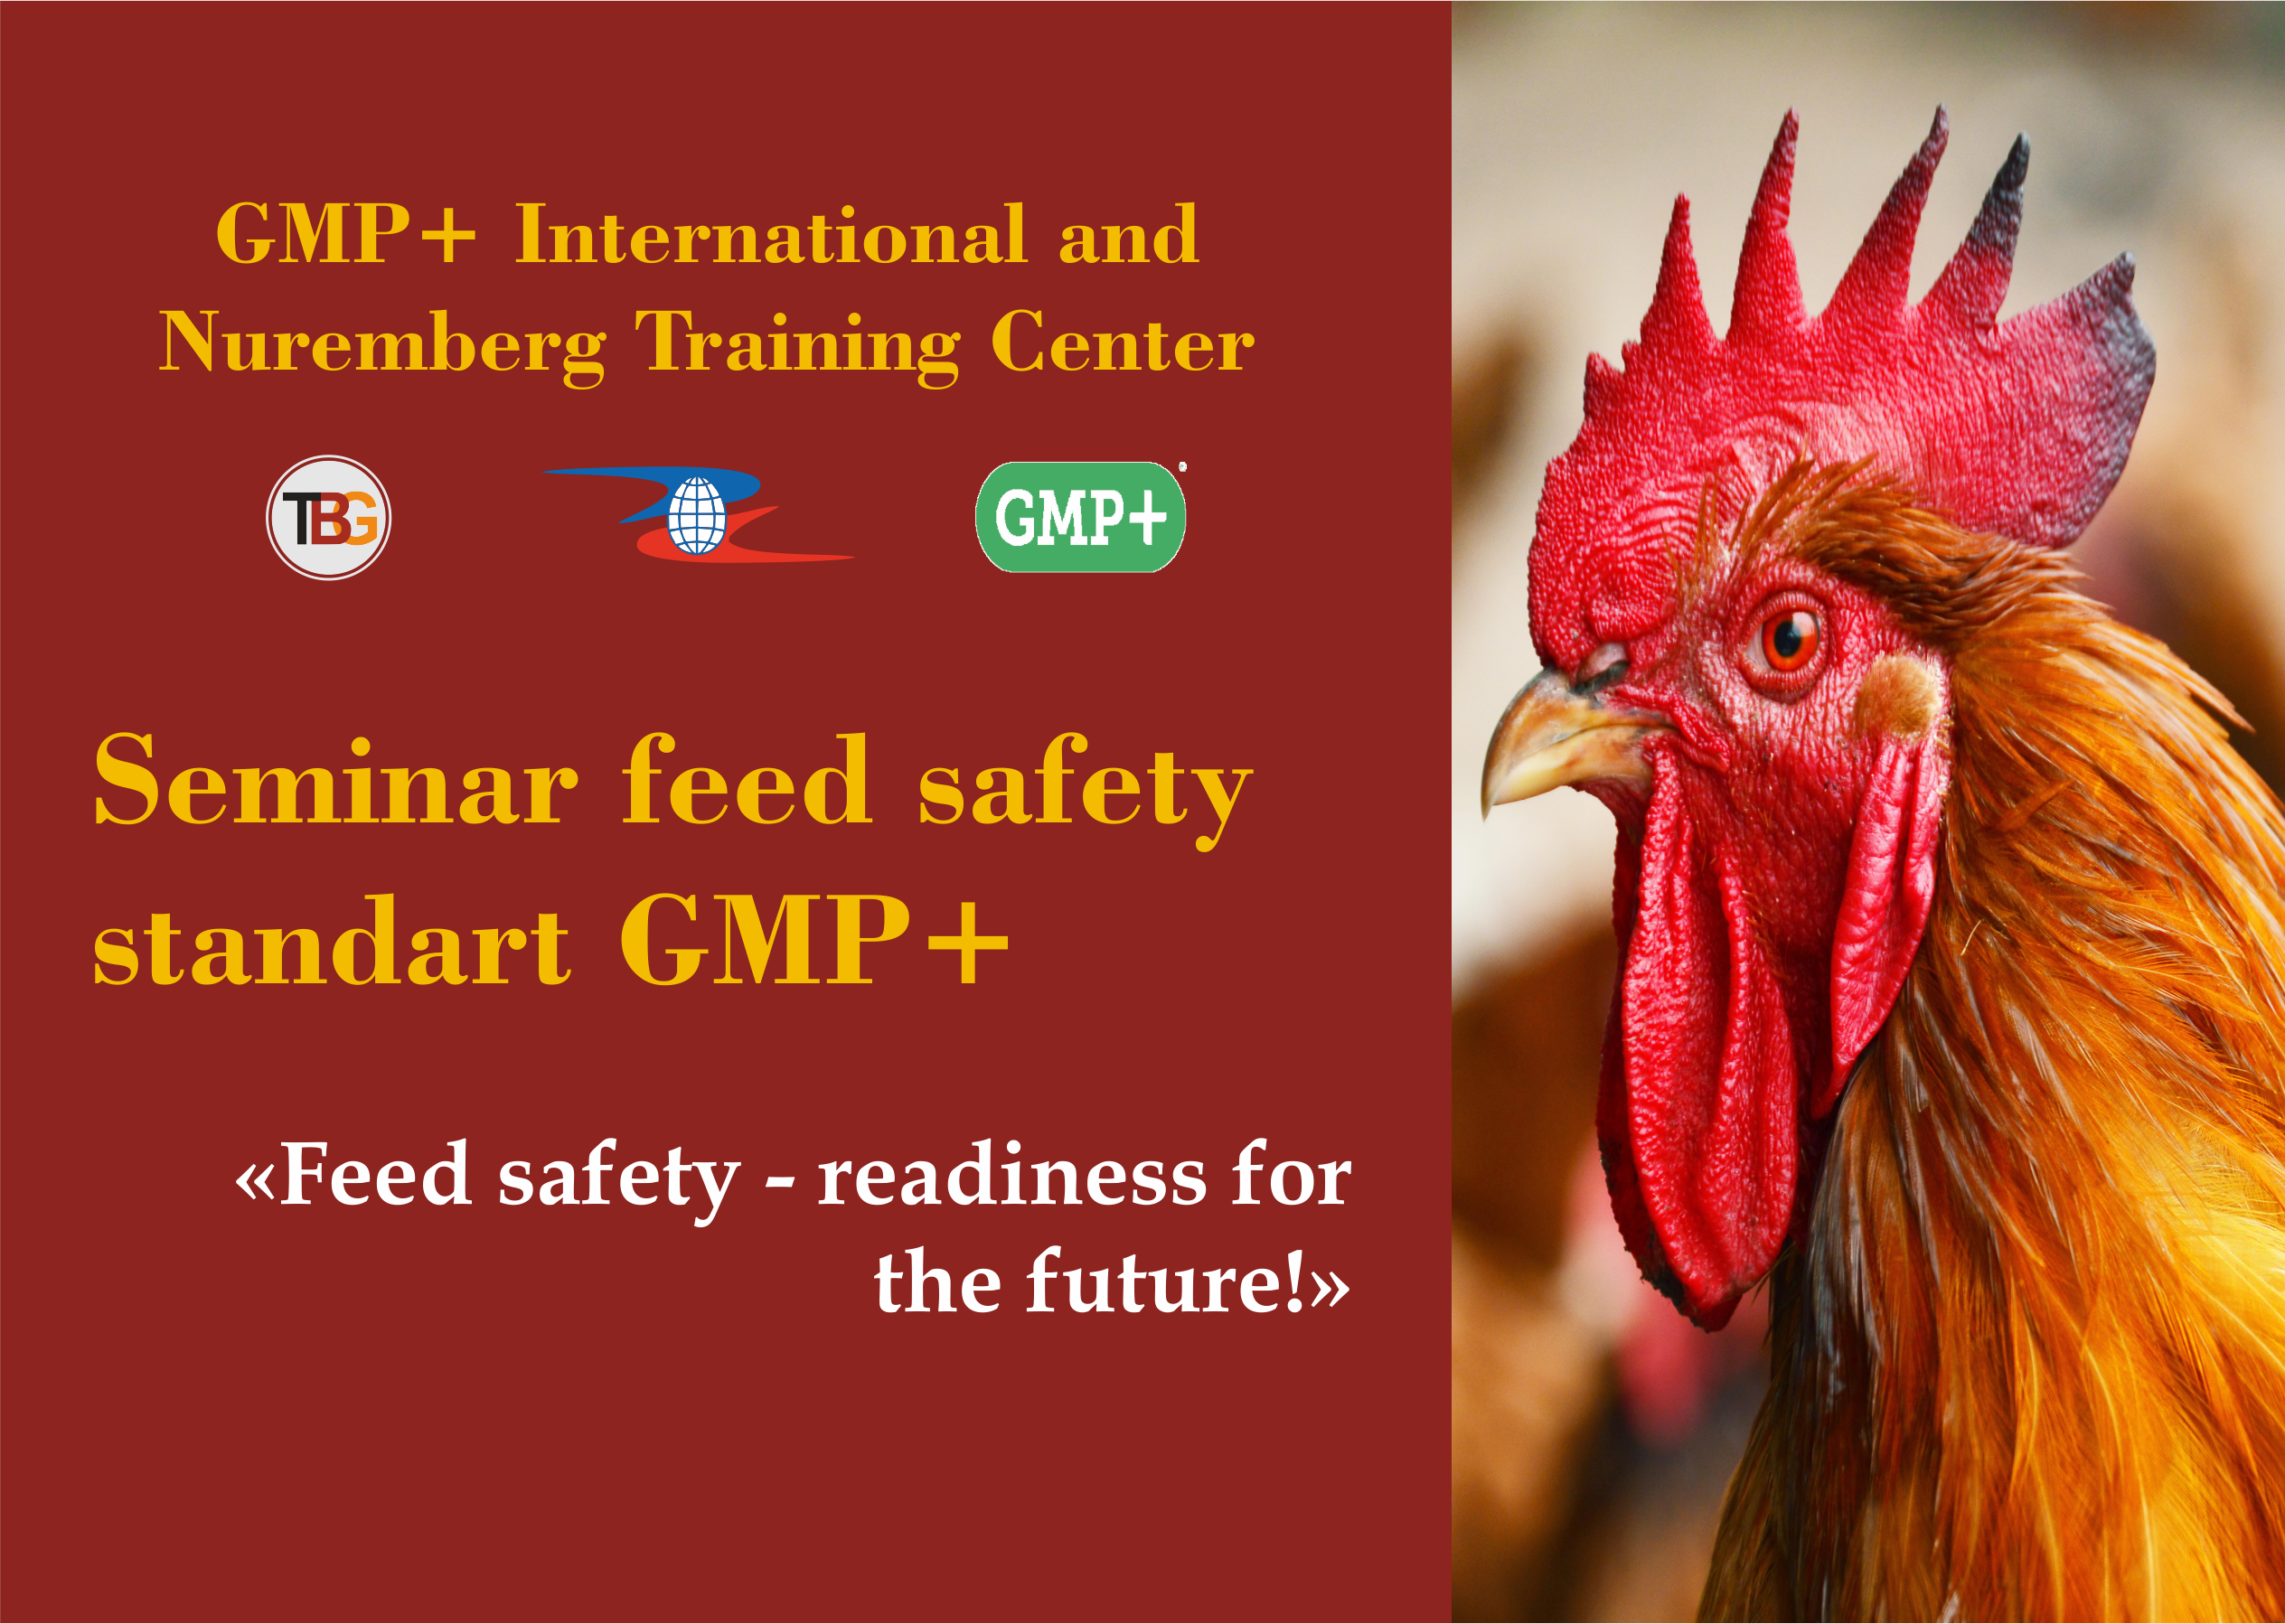 Seminar feed safety standart GMP+